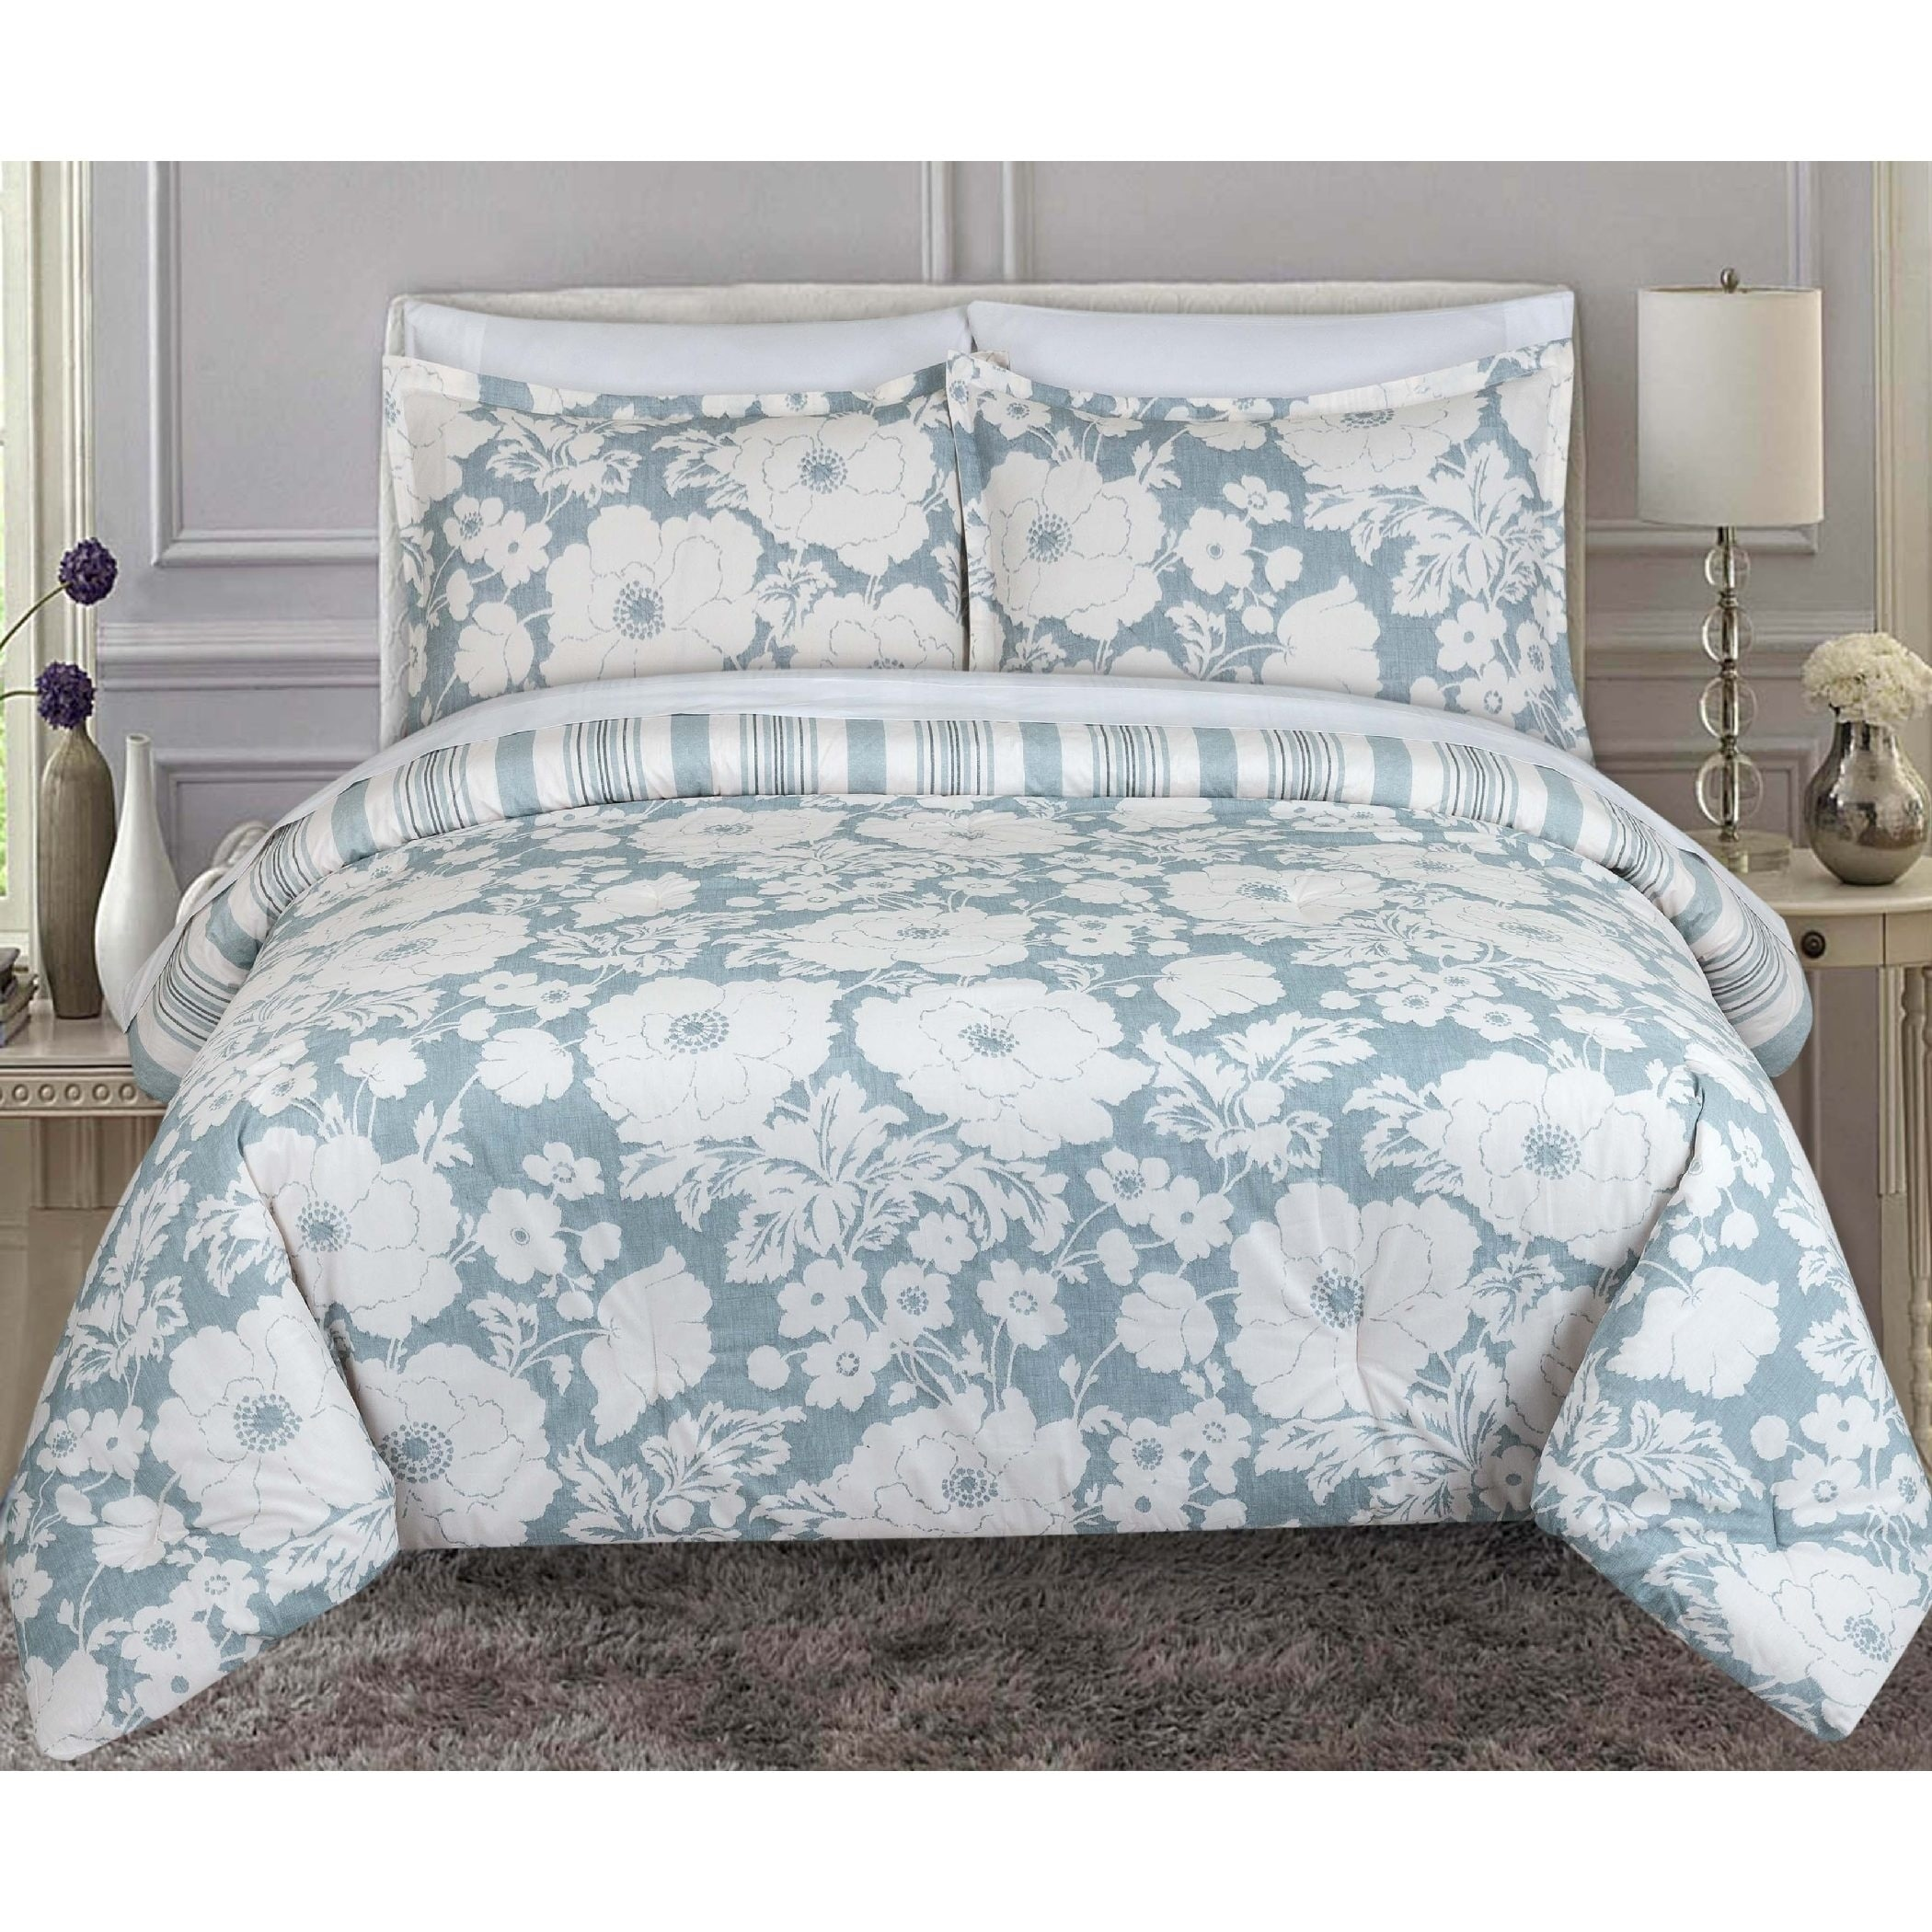 accessories and chambray malinda duvet set dreams drapes n cover dd